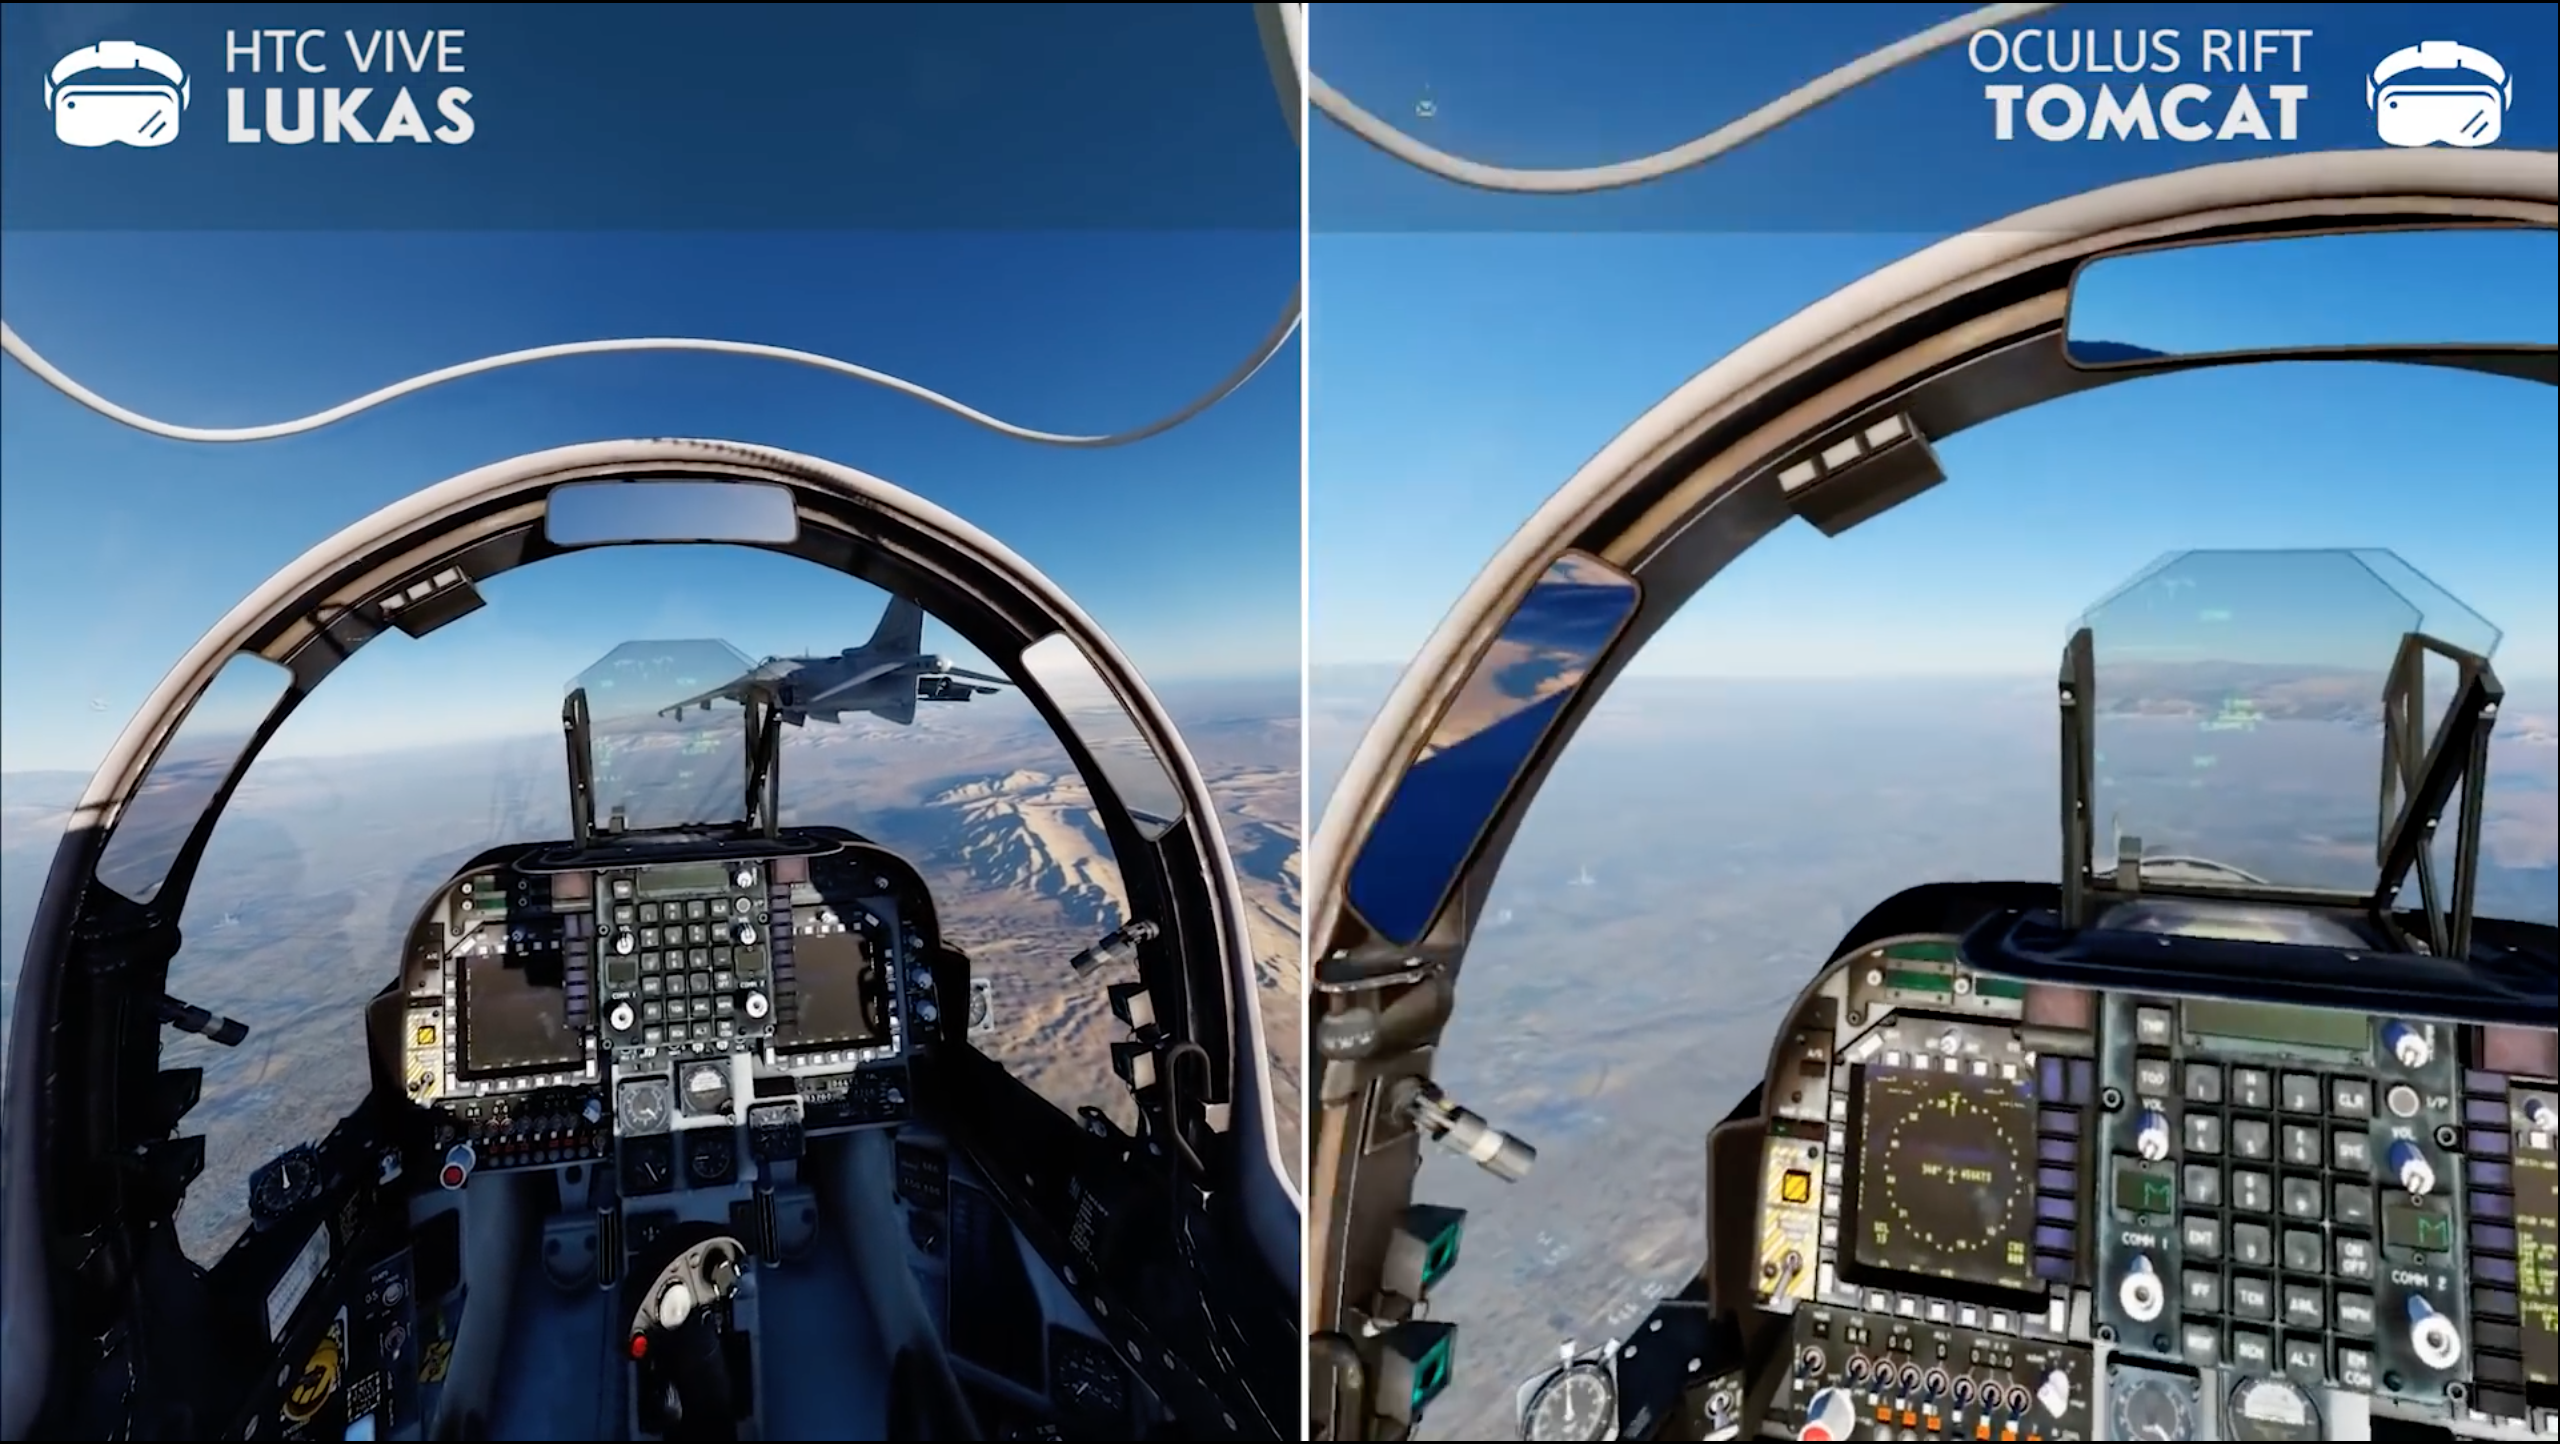 DCS: Dual VR (Rift + Vive) | In-flight refueling and formation fire